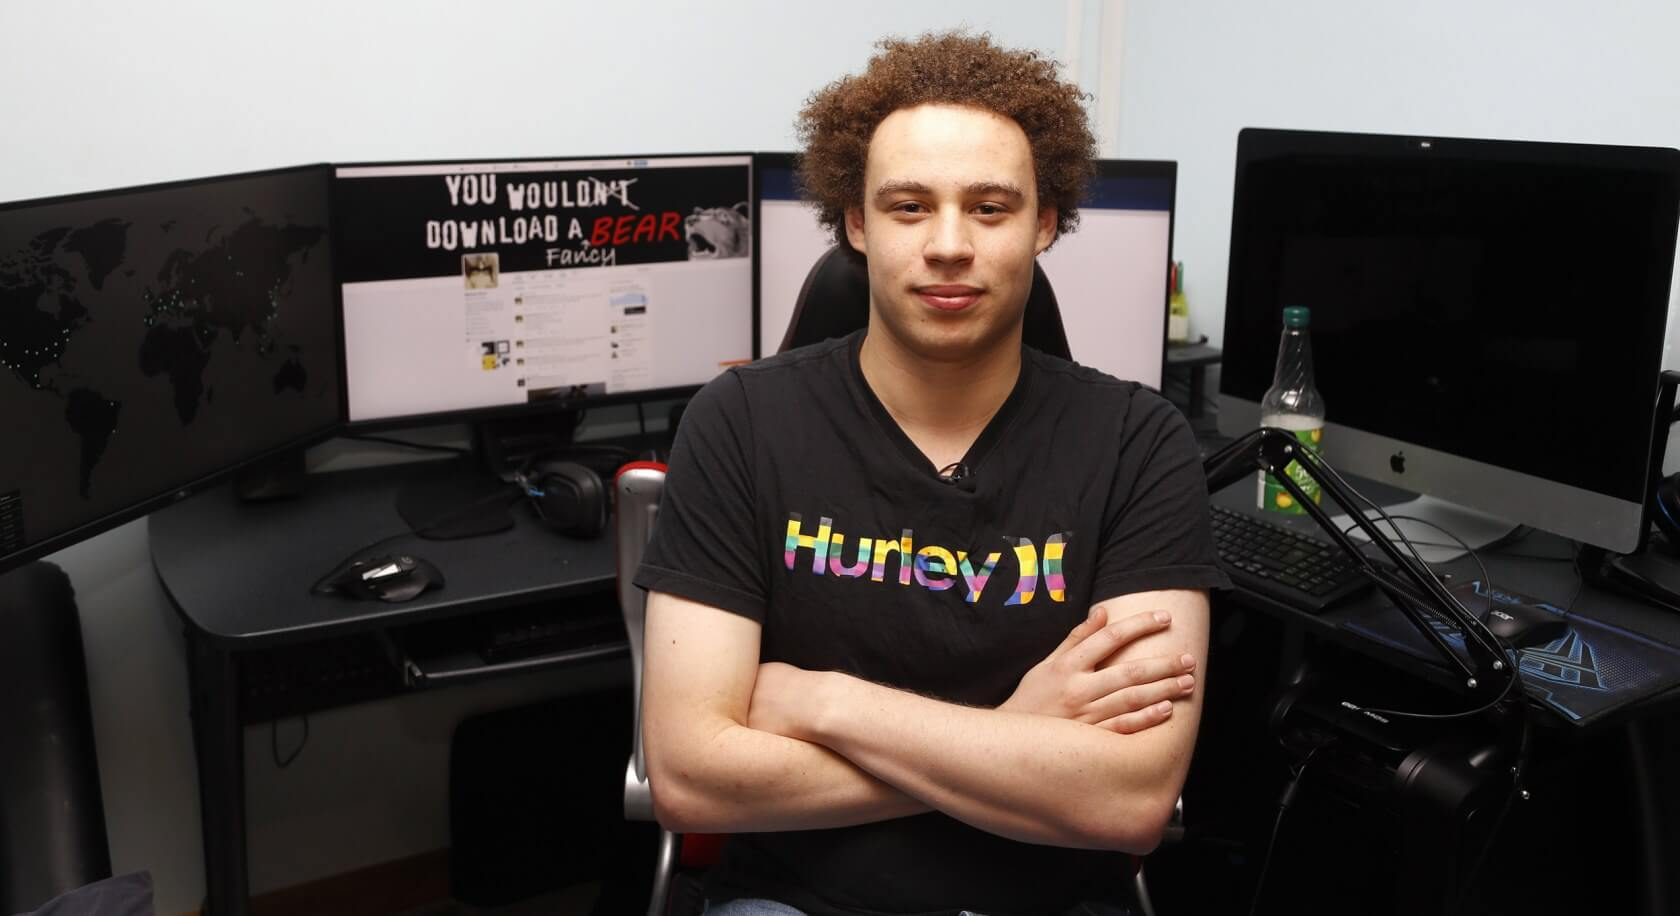 Marcus Hutchins, known for stopping WannaCry, pleads guilty in banking malware case